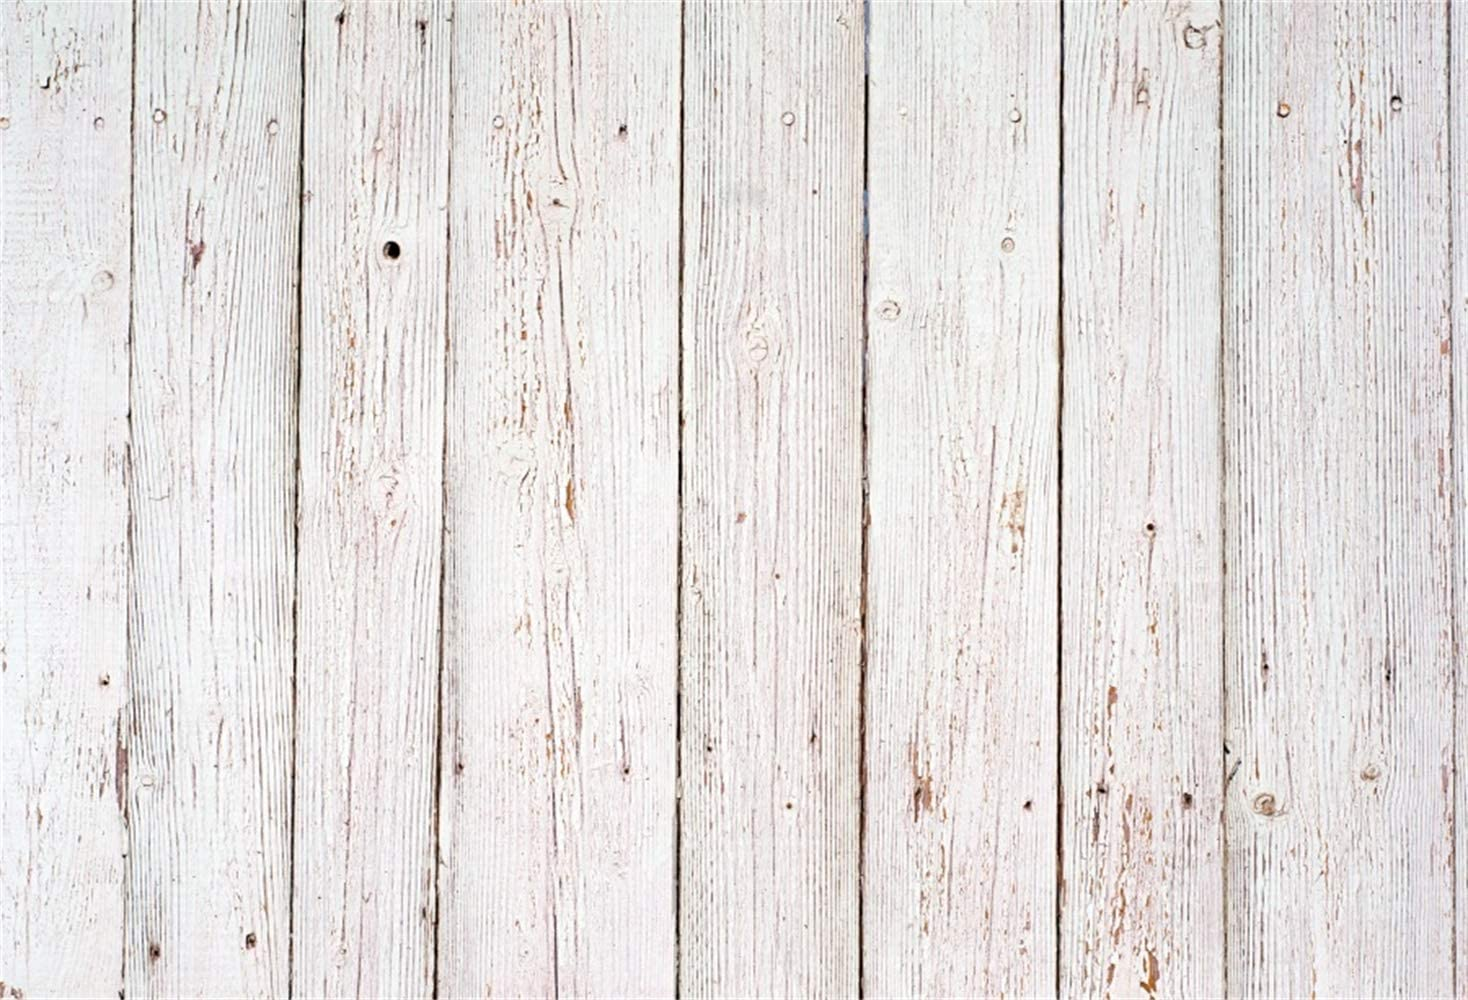 Laeacco Colorful Faded Wooden Planks Background 10x6.5ft Birthday Party Vinyl Photography Backdrop Mottled Grunge Aged Wood Wall Splice Board Baby Newborn Kids Portrait Shoot Decor Studio Wallpaper